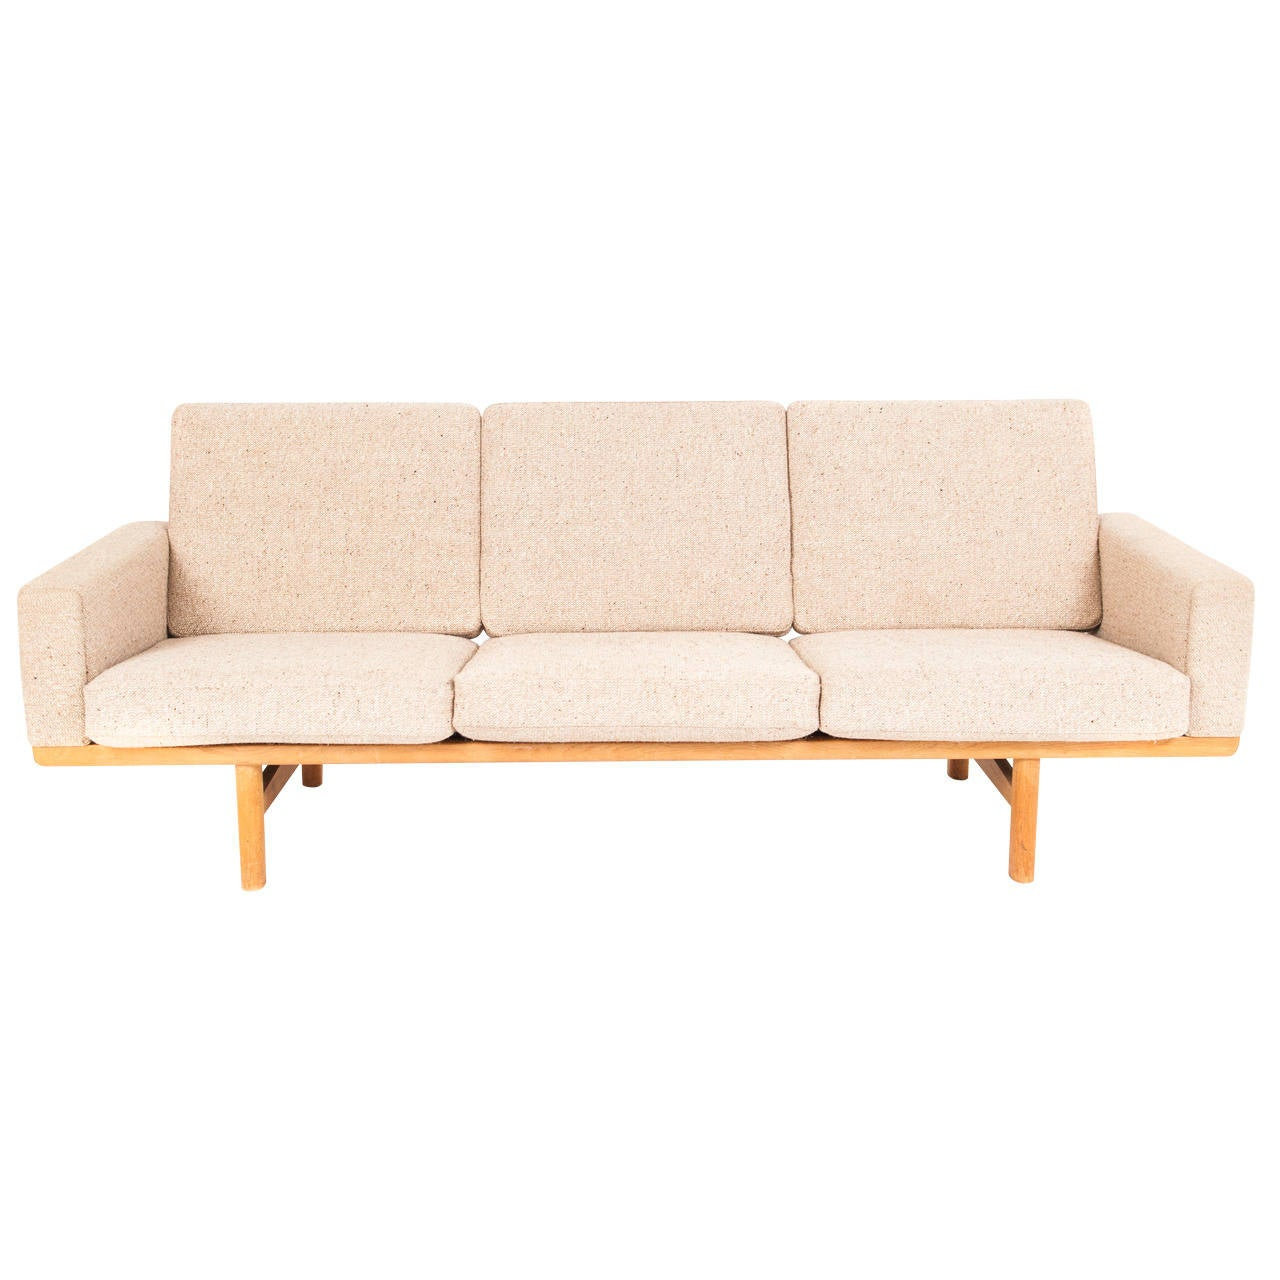 hans j wegner sofa at 1stdibs. Black Bedroom Furniture Sets. Home Design Ideas